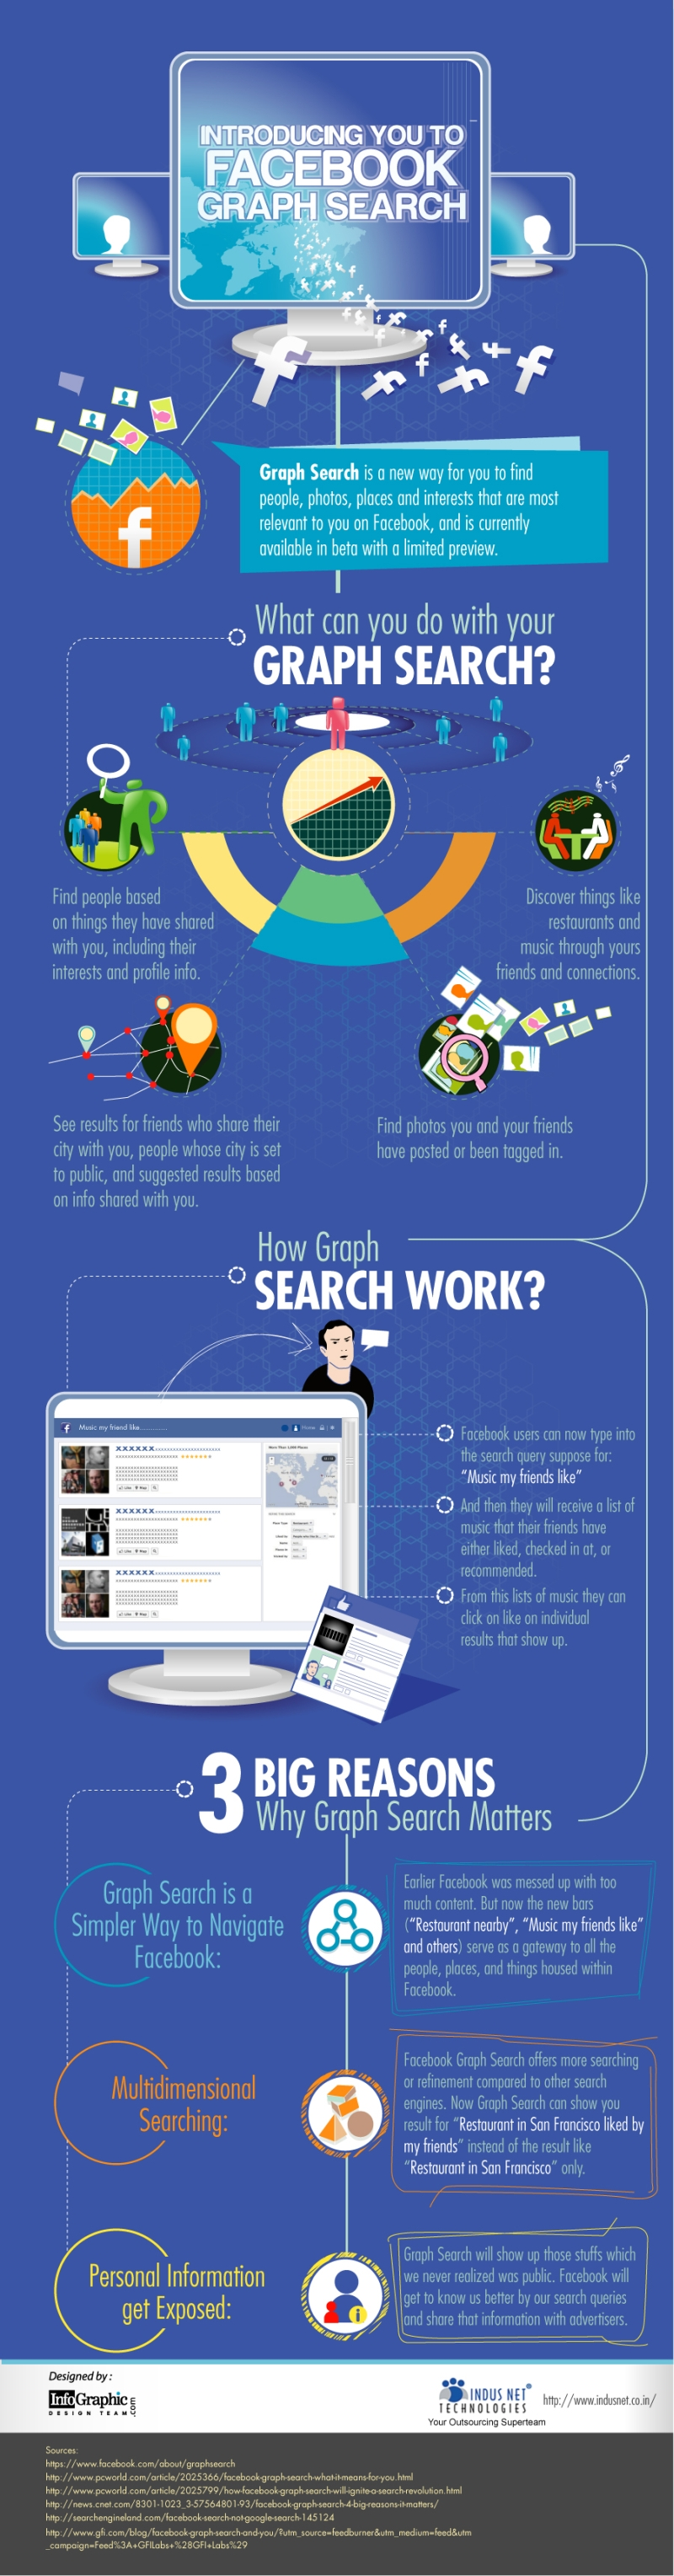 Facebook Graph Search ile Tanışın